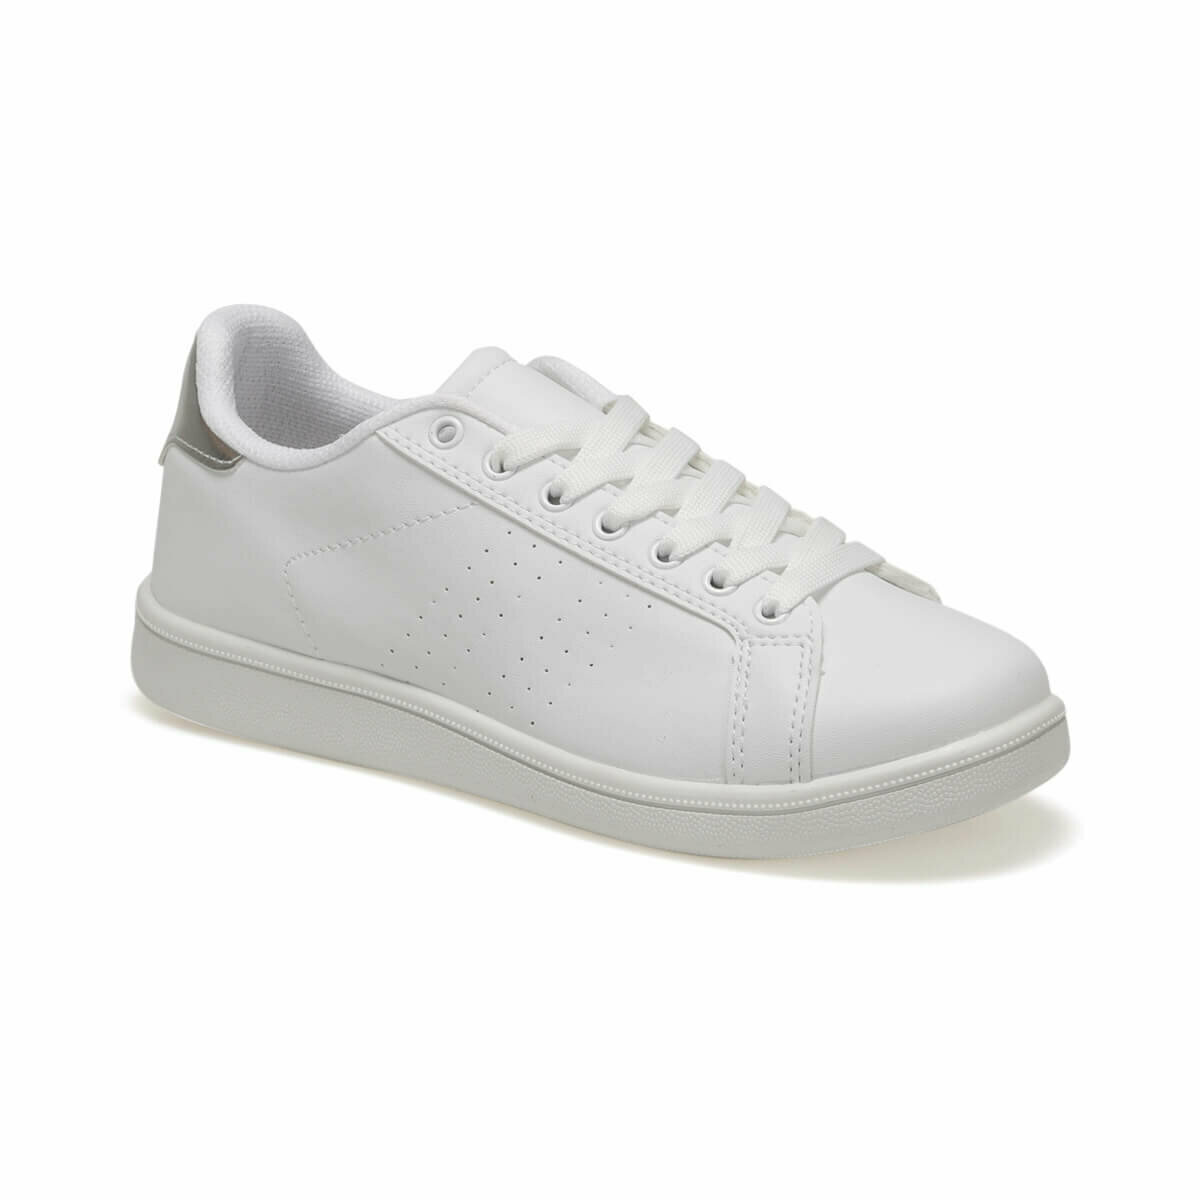 FLO TERES W White Women 'S Sneaker Shoes Torex